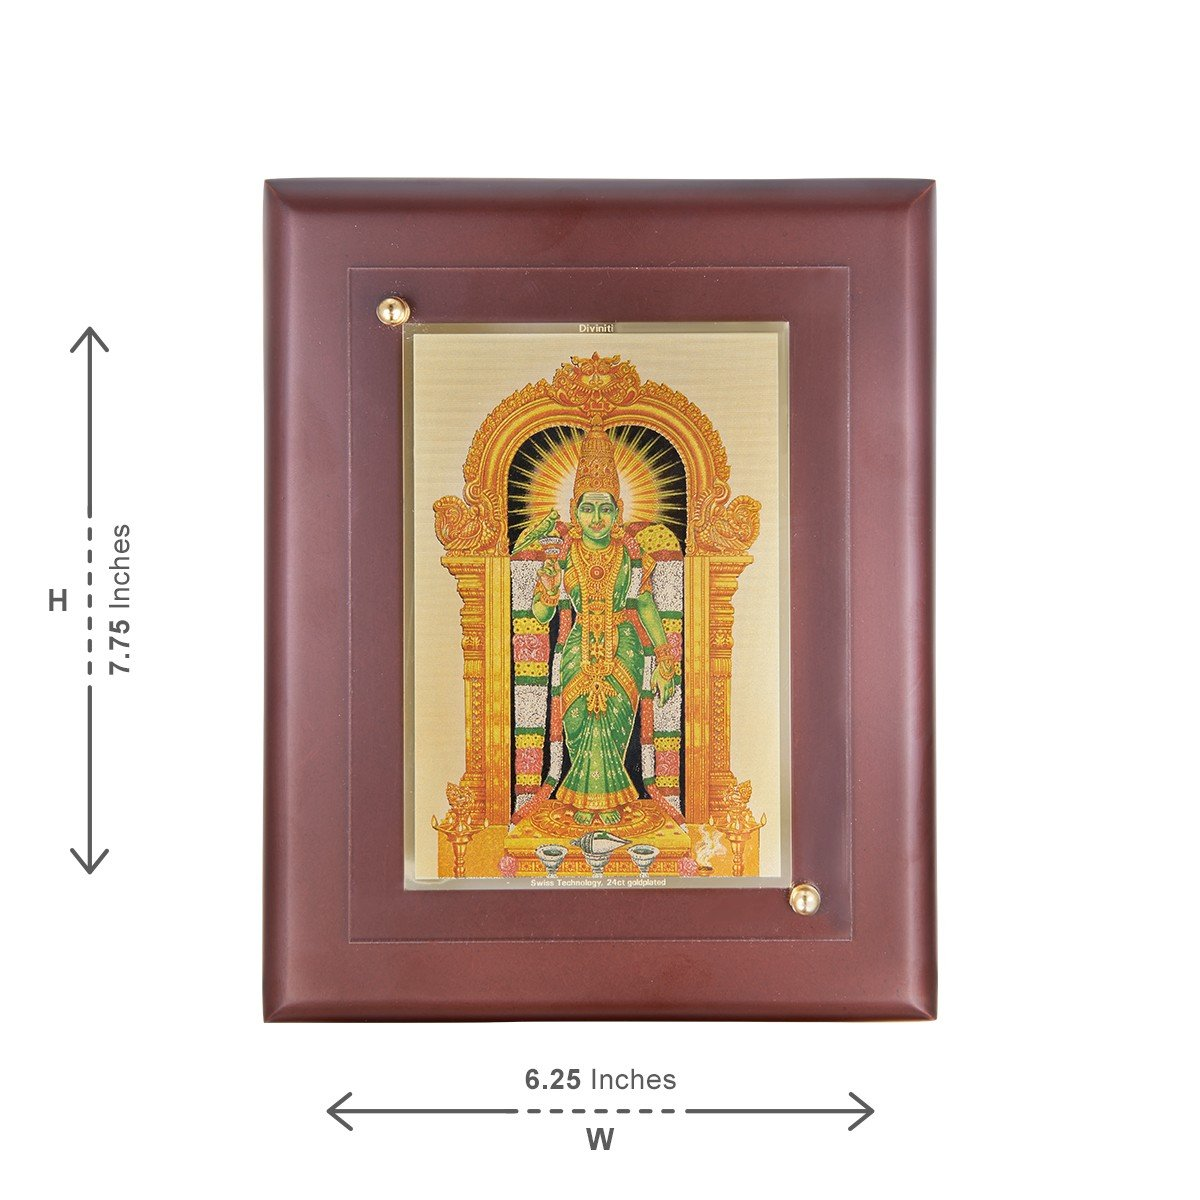 Meenkashi Photo Frame